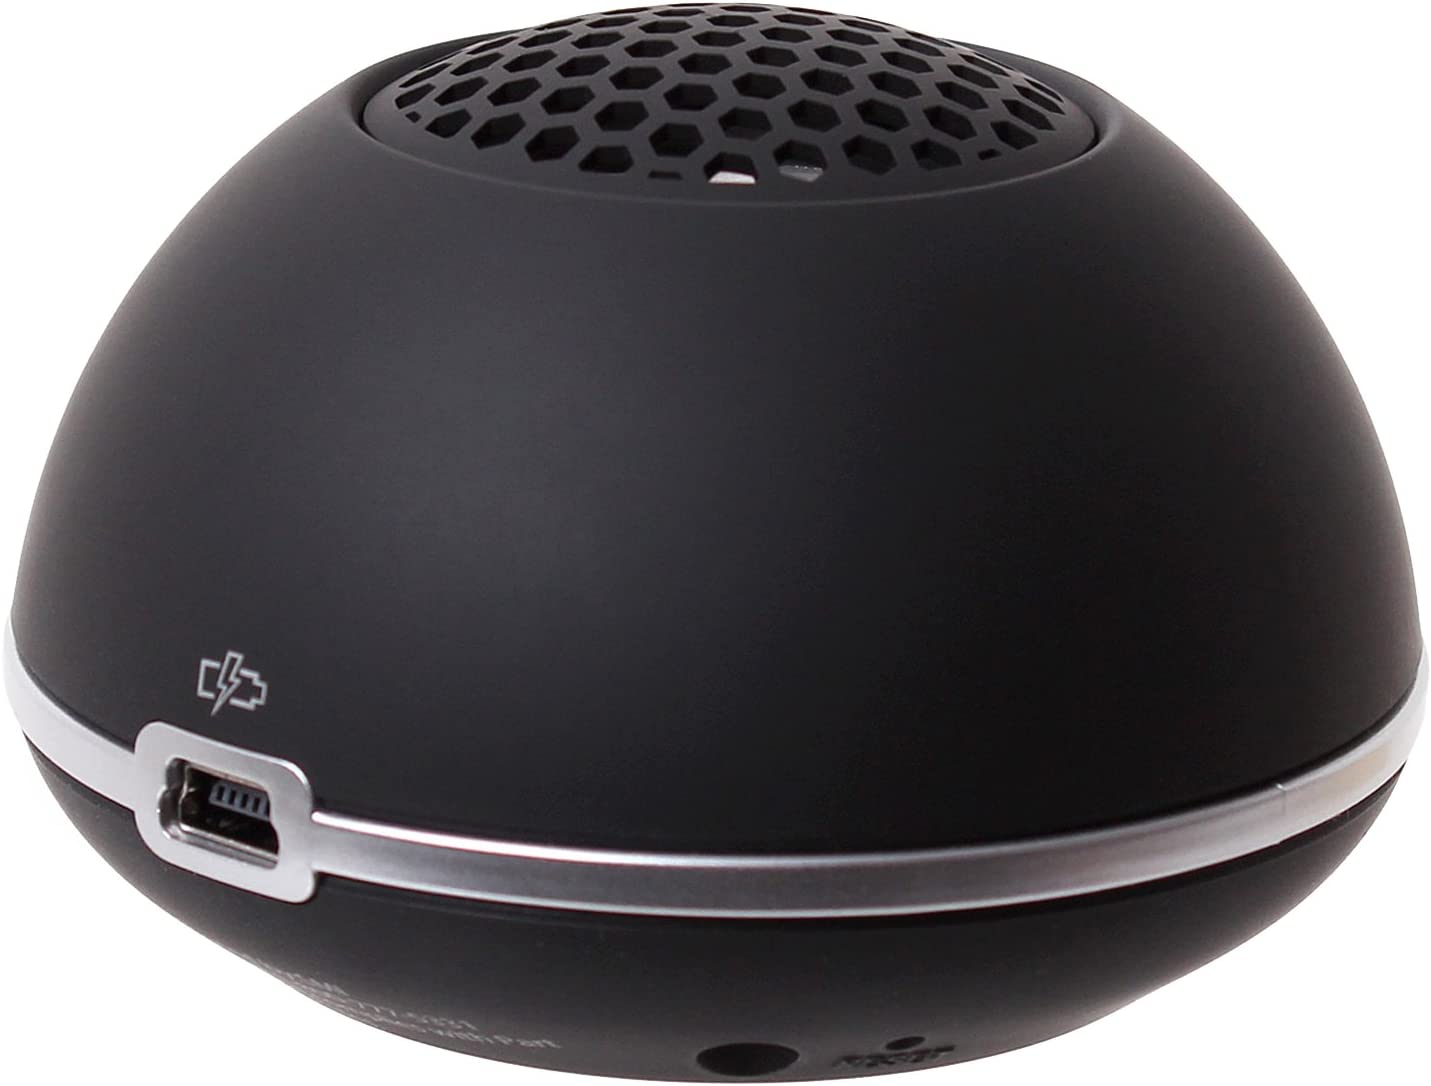 JENSEN SMPS-620 Compact Bluetooth Conference//Music Speaker